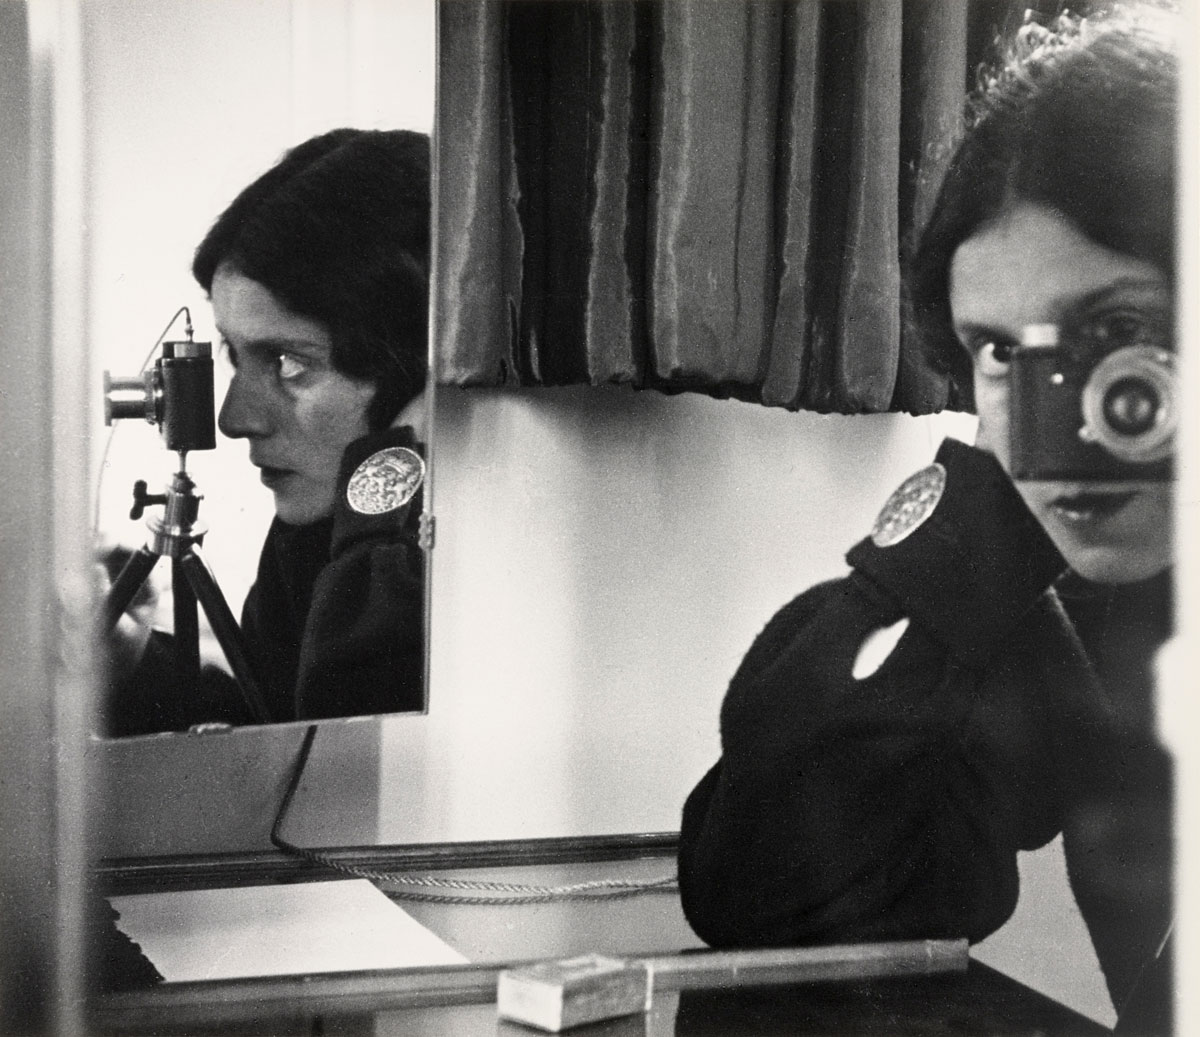 Self-portrait by Ilse Bing| © cea +/Flickr